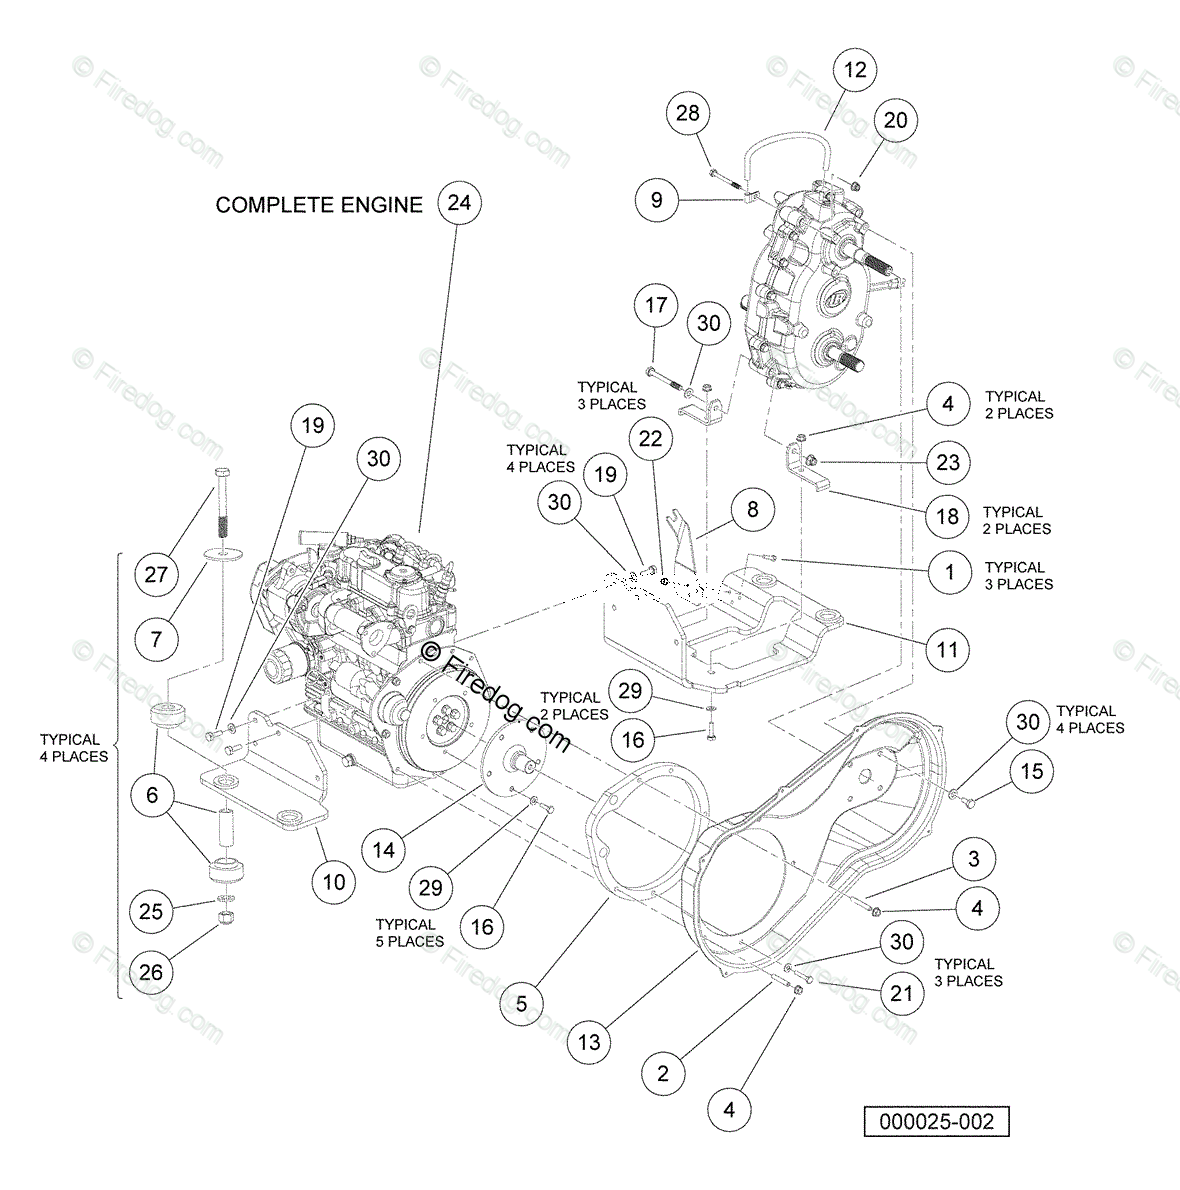 Kubota Diesel Engine Parts Manual D722